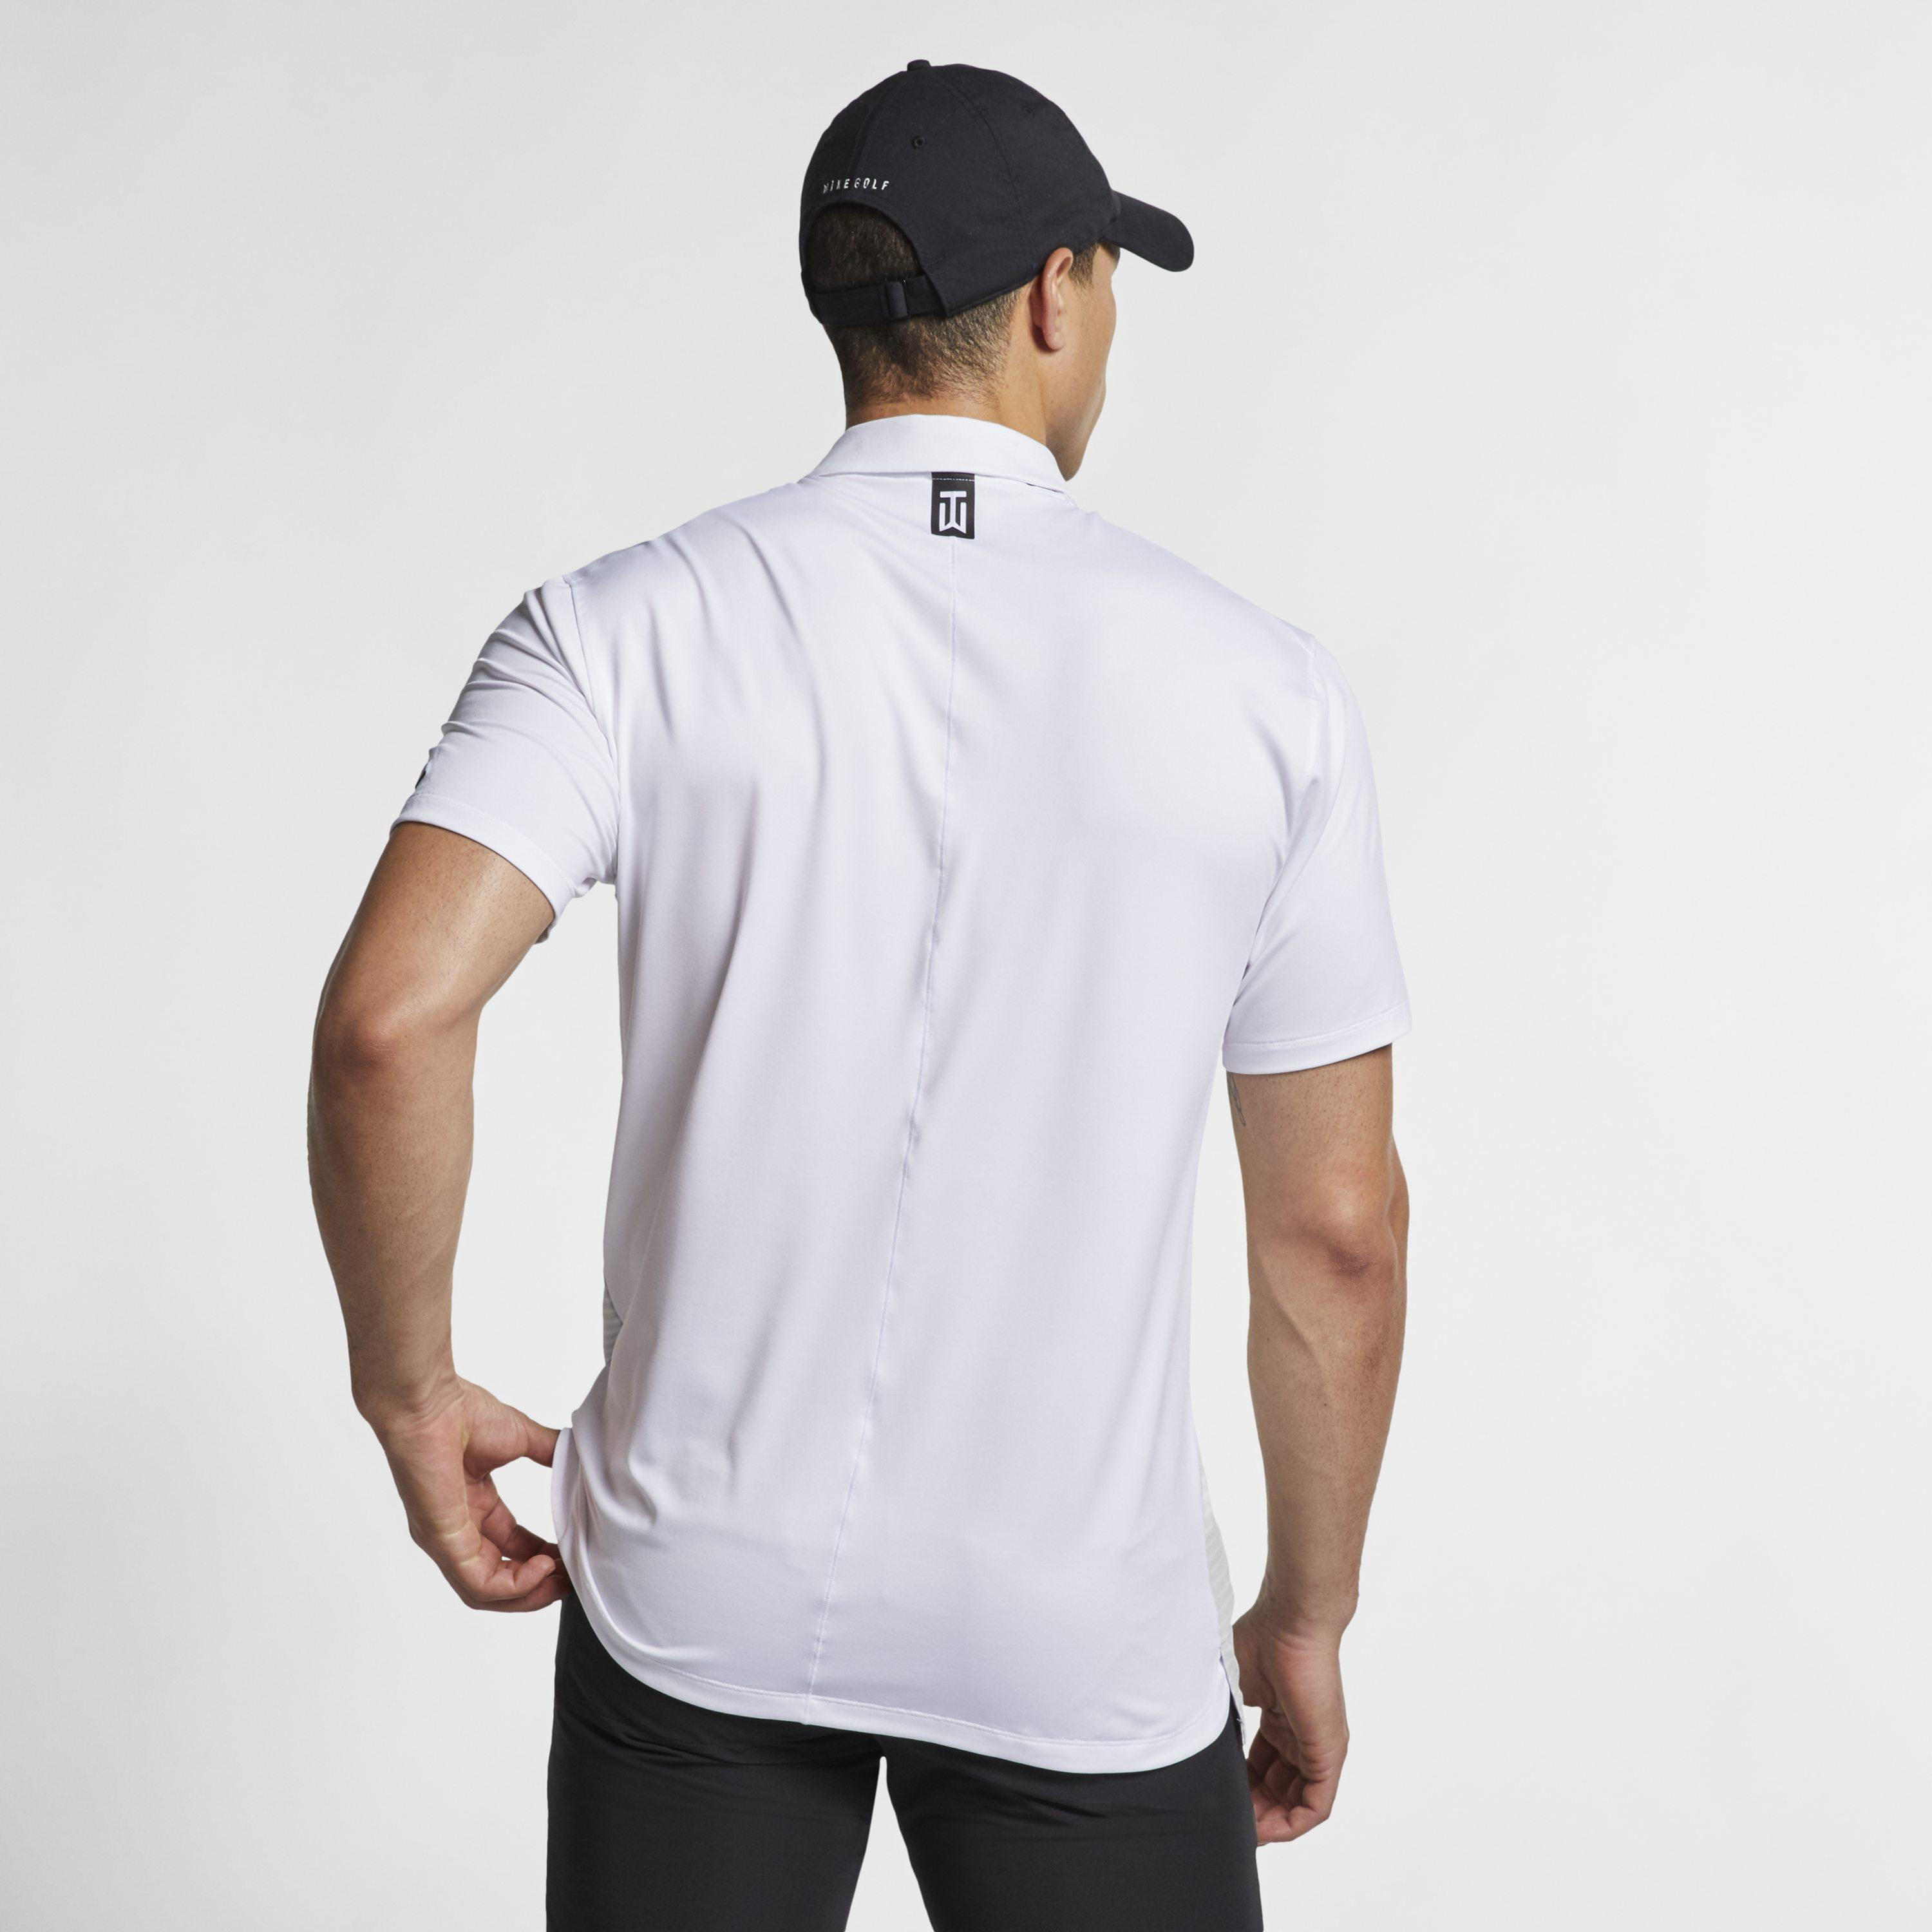 094e5d1fe ... Dri-fit Short-sleeve Tw Vapor Colorblock Polo for Men. View fullscreen